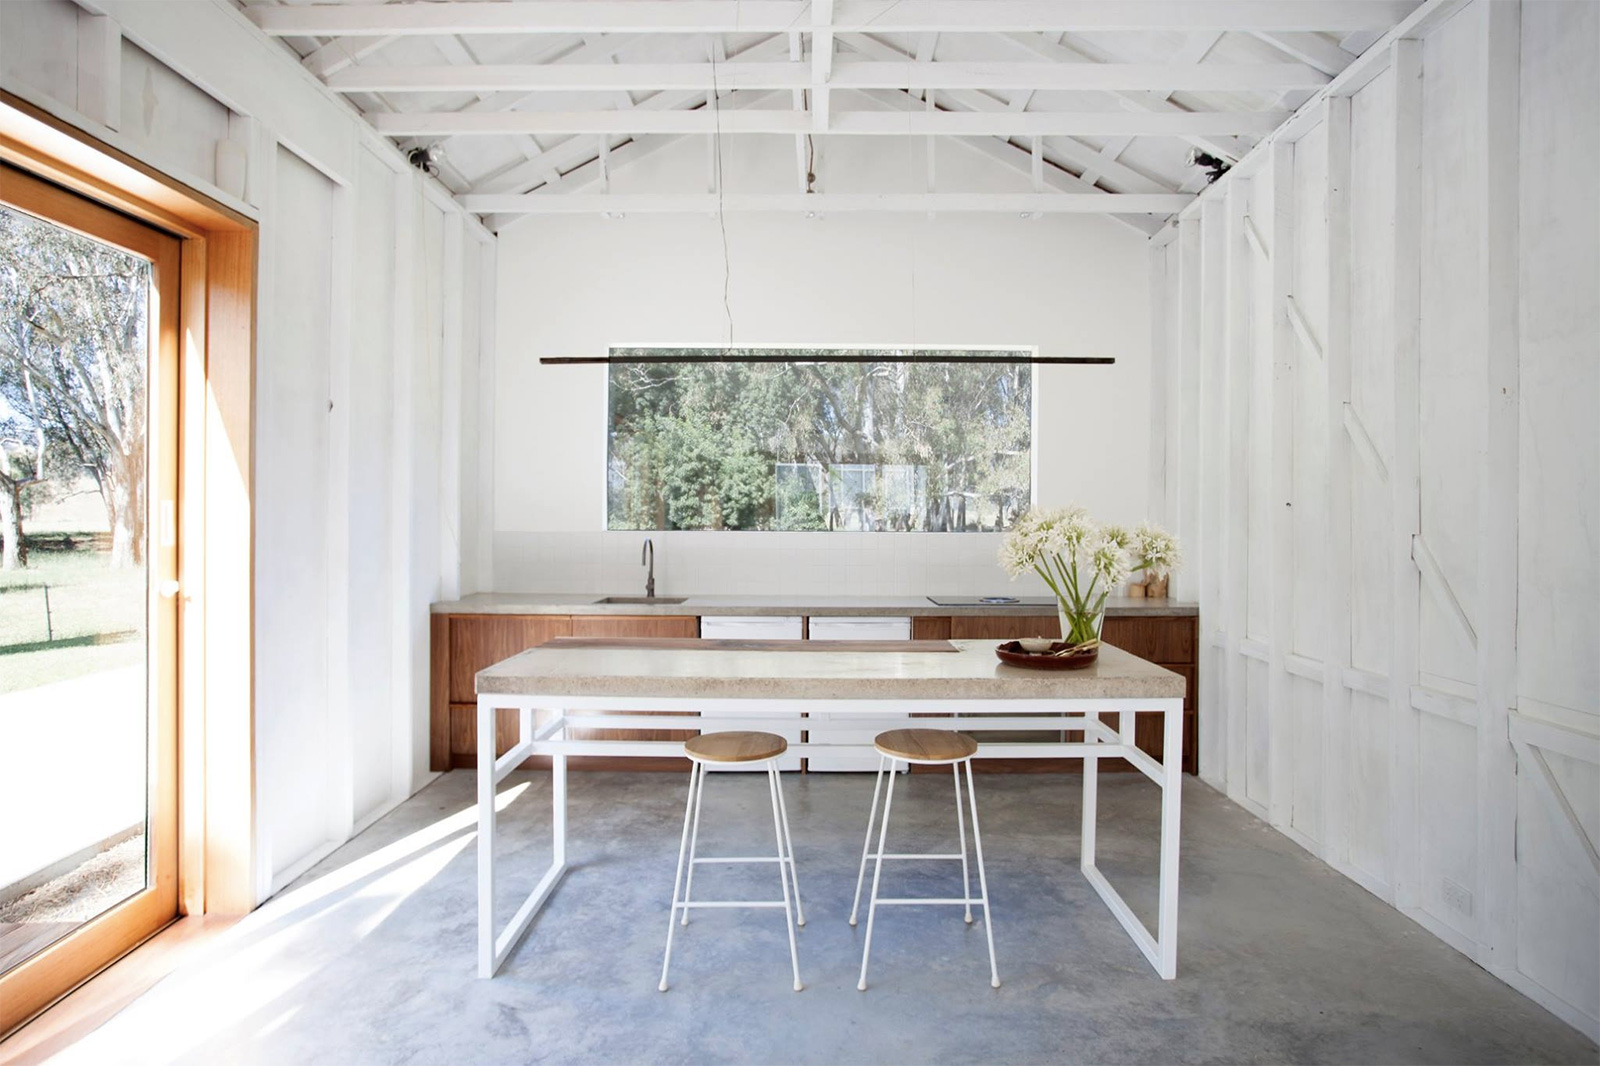 Cortes Kiln is a retreat in the heart of Australia's High Country